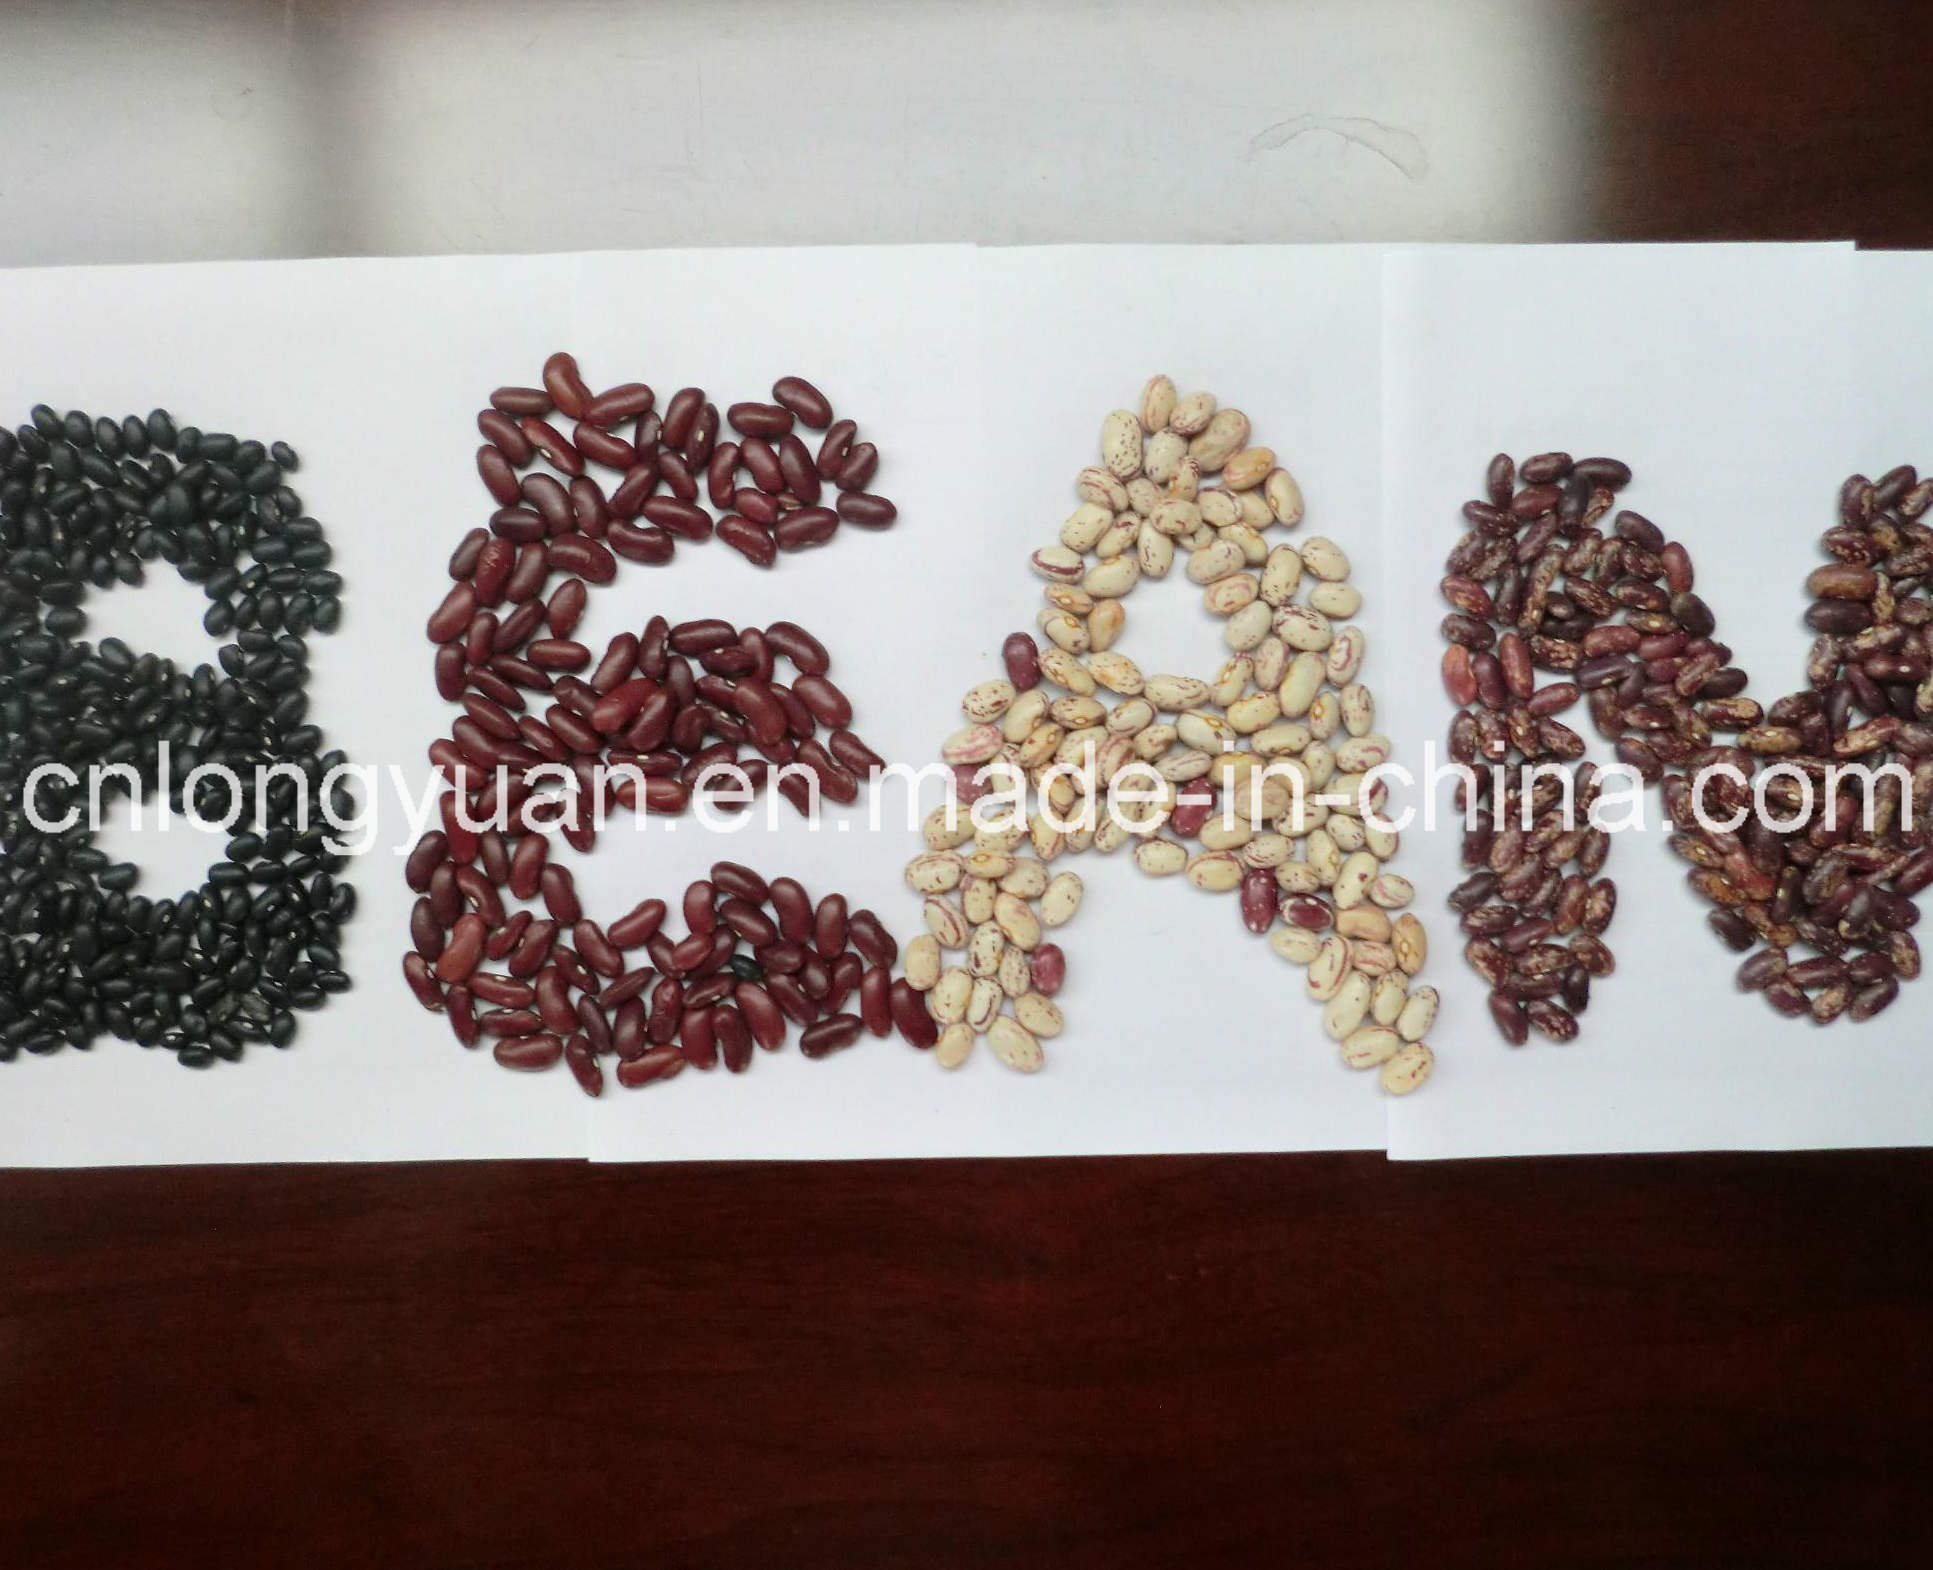 White Kidney Bean with Good Quality